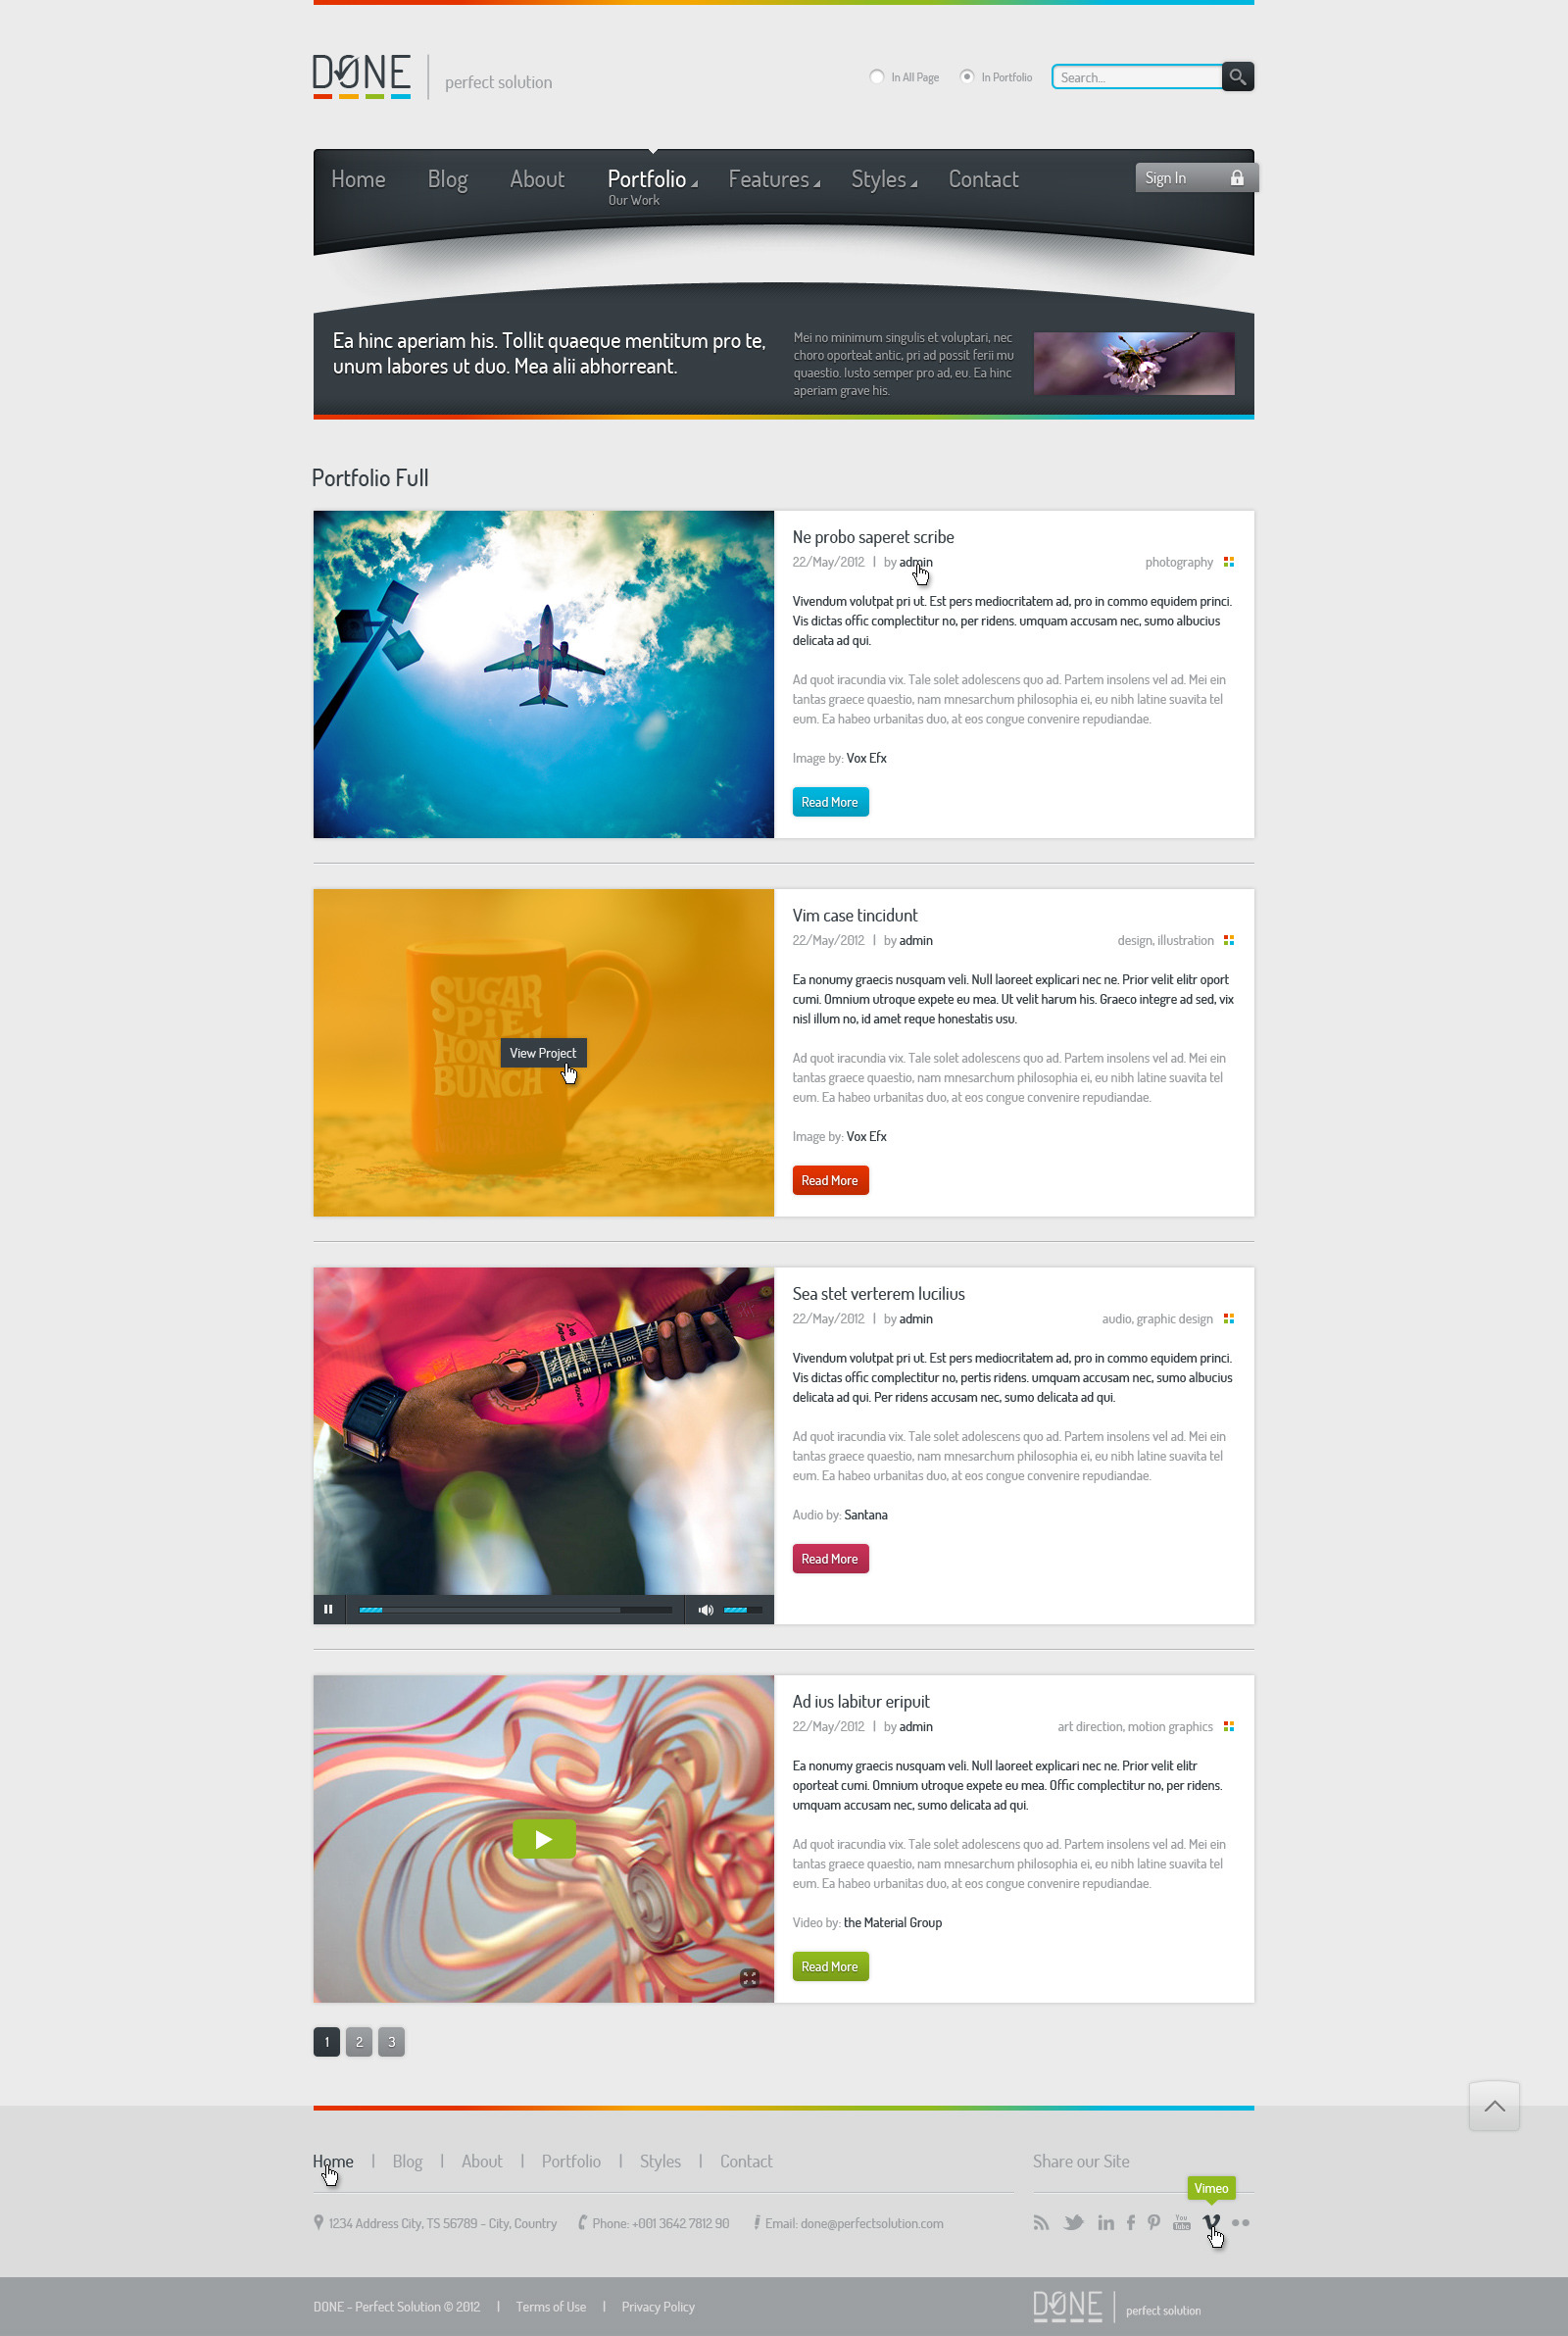 Done - Portfolio & Blog PSD Template - Done - Portfolio & Blog Template.  Portfolio full.